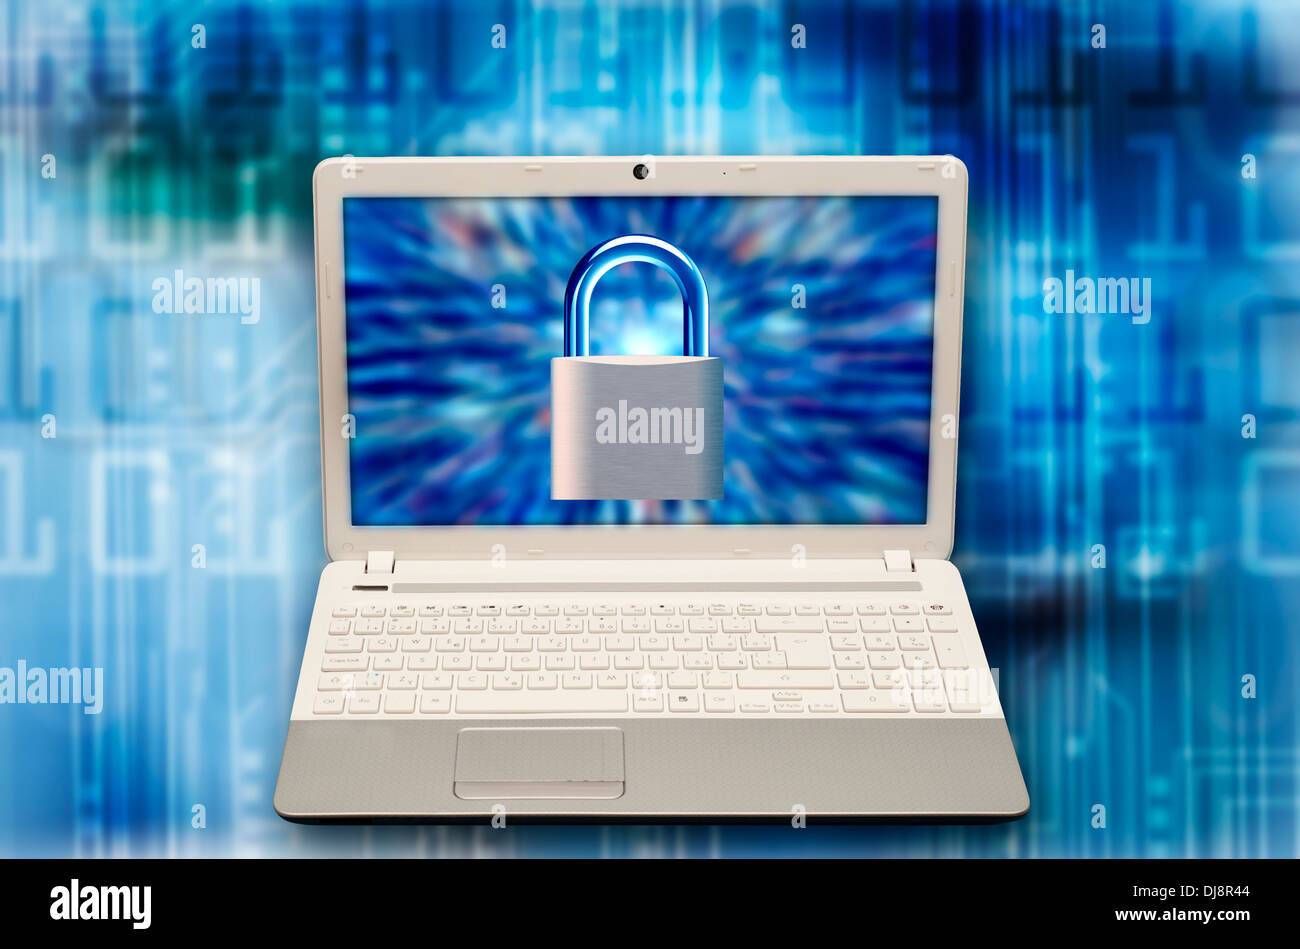 concept for computer security and ransomware - Stock Image